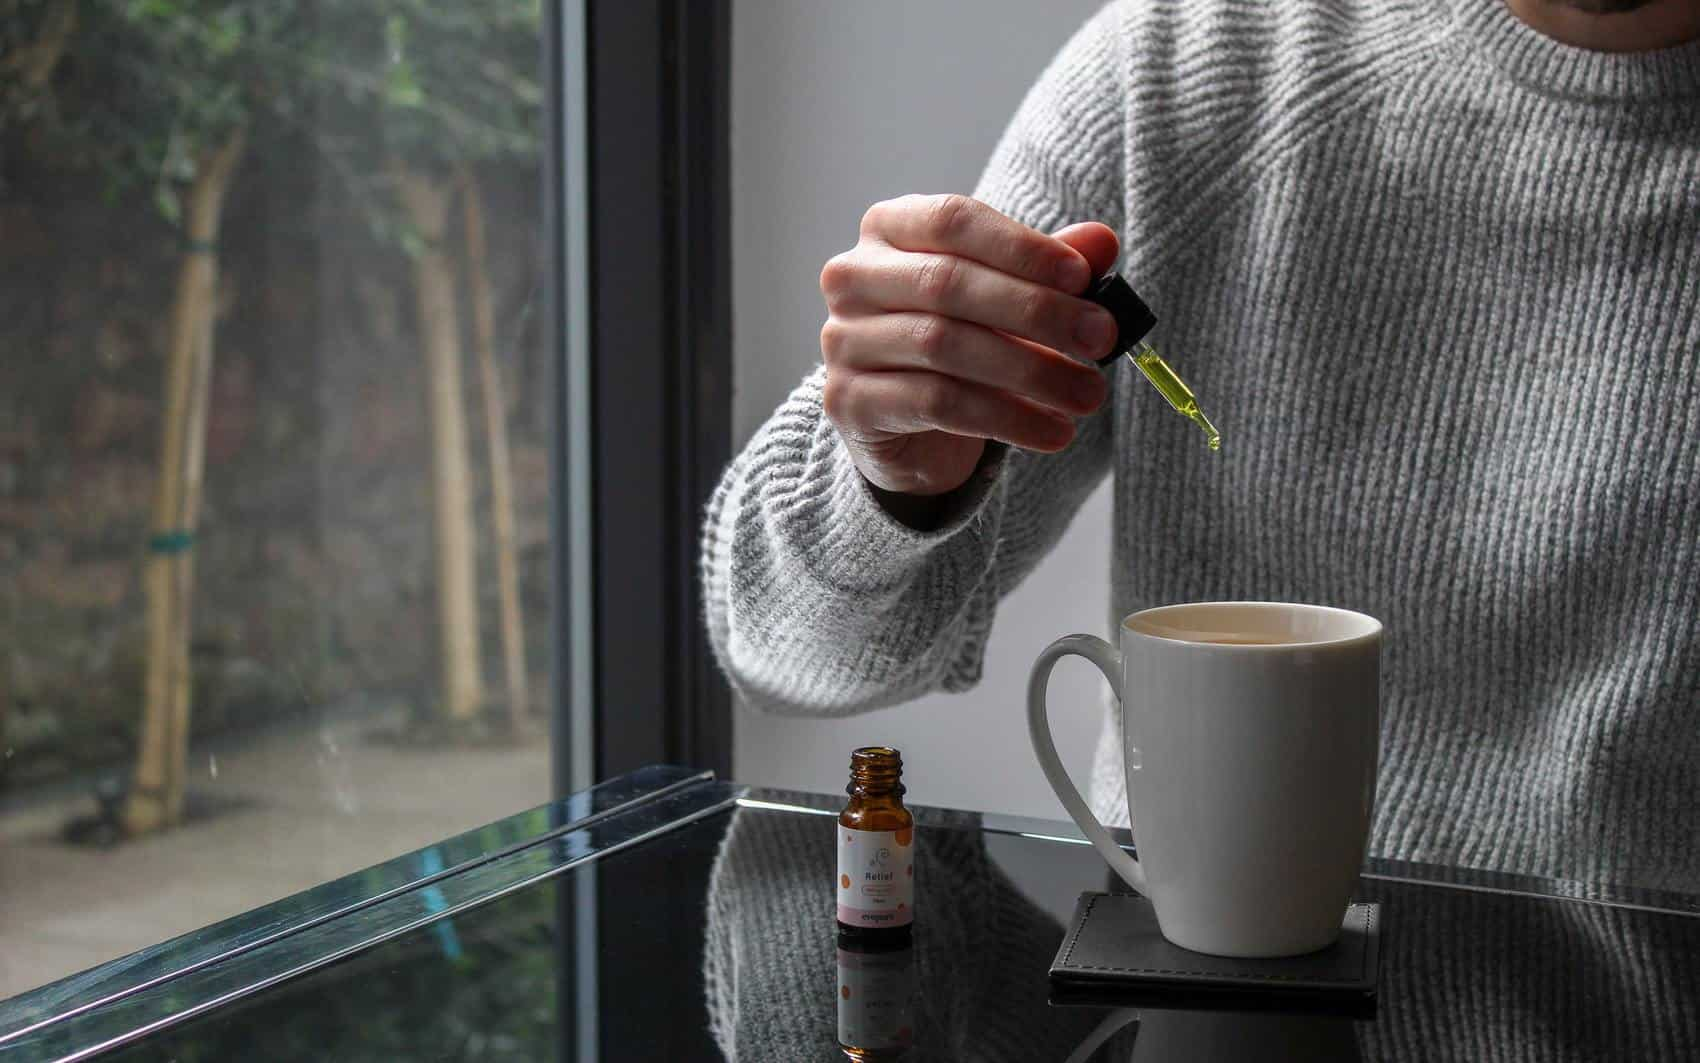 CBD for nerve pain being put in coffee cup.